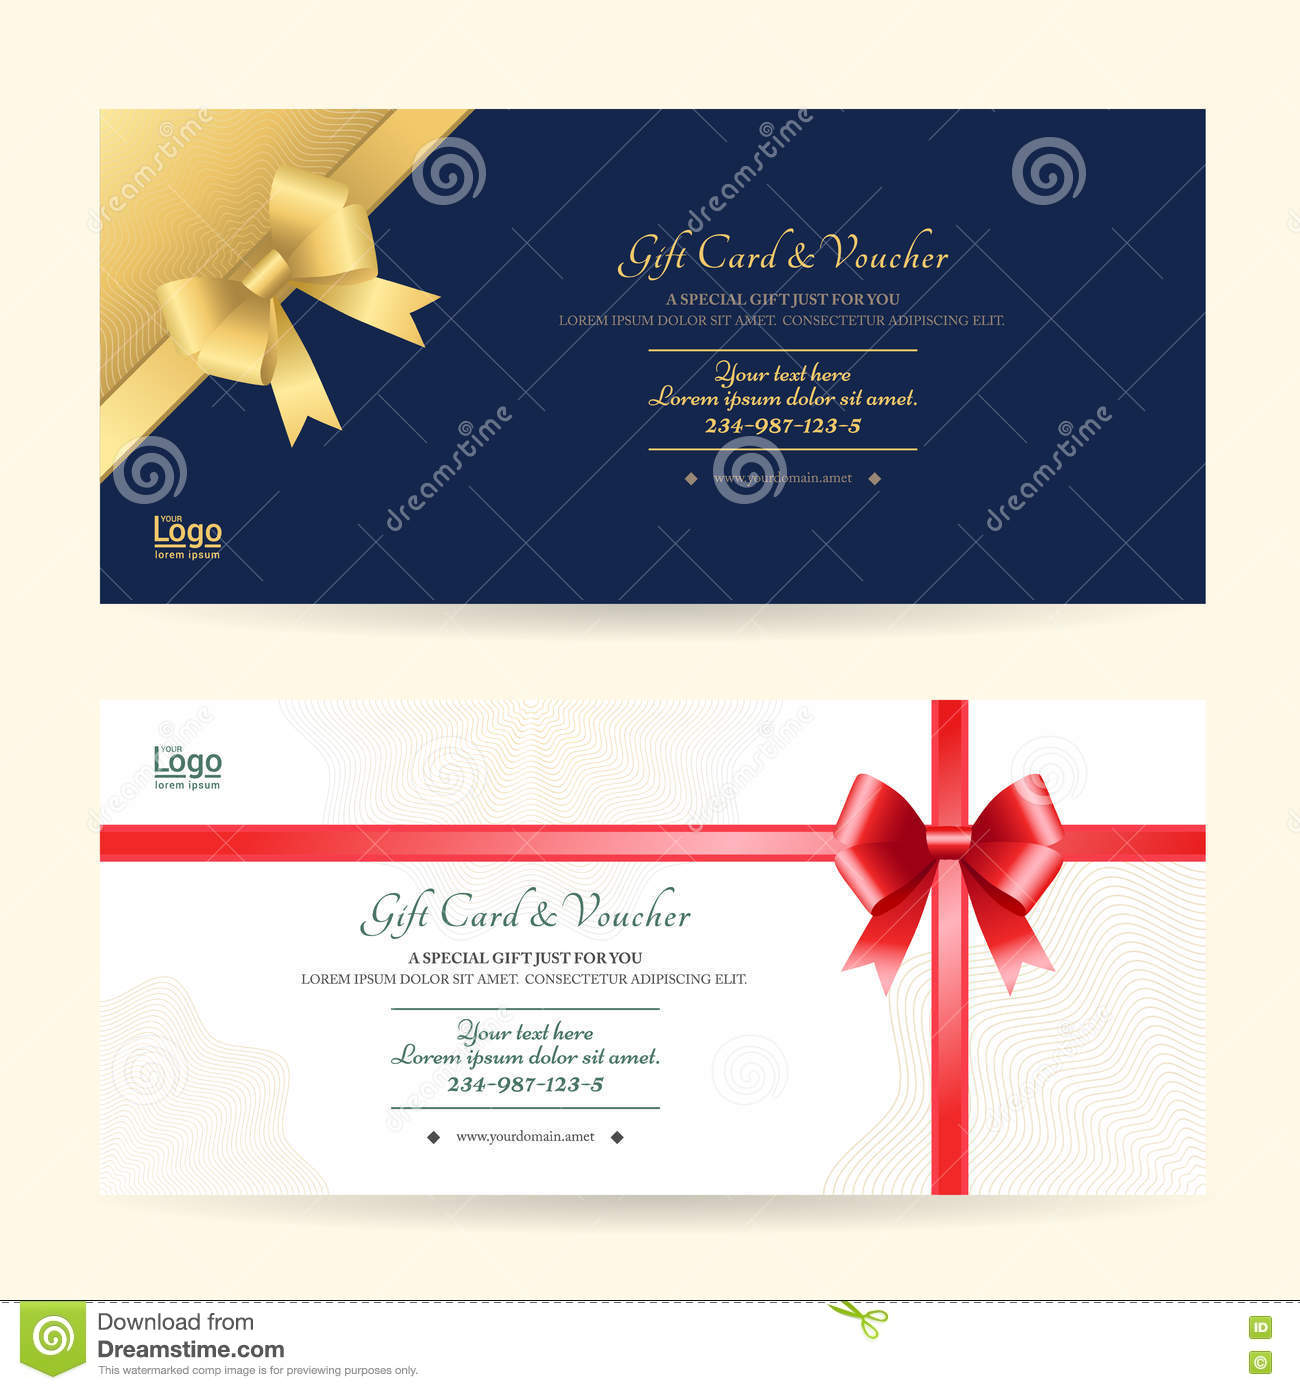 Elegant Gift Voucher Or Gift Card Template Vector Image – Voucher Card Template